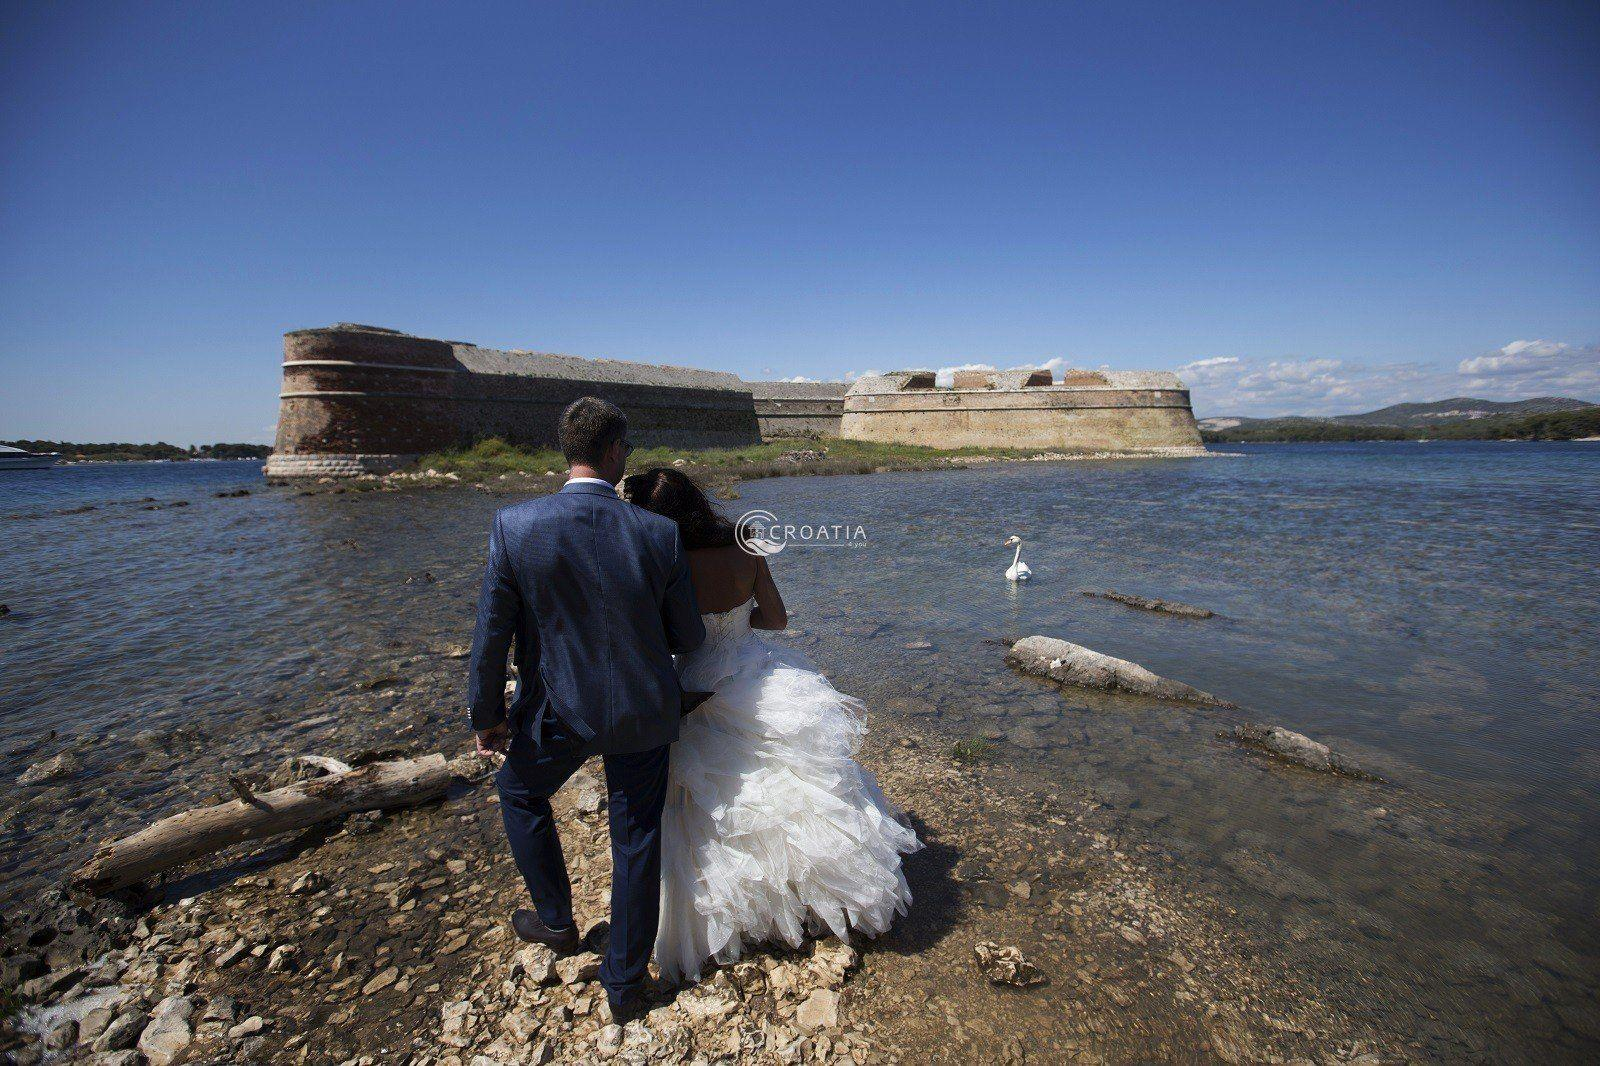 Wedding at St. Nicholas Fortress (2 days)